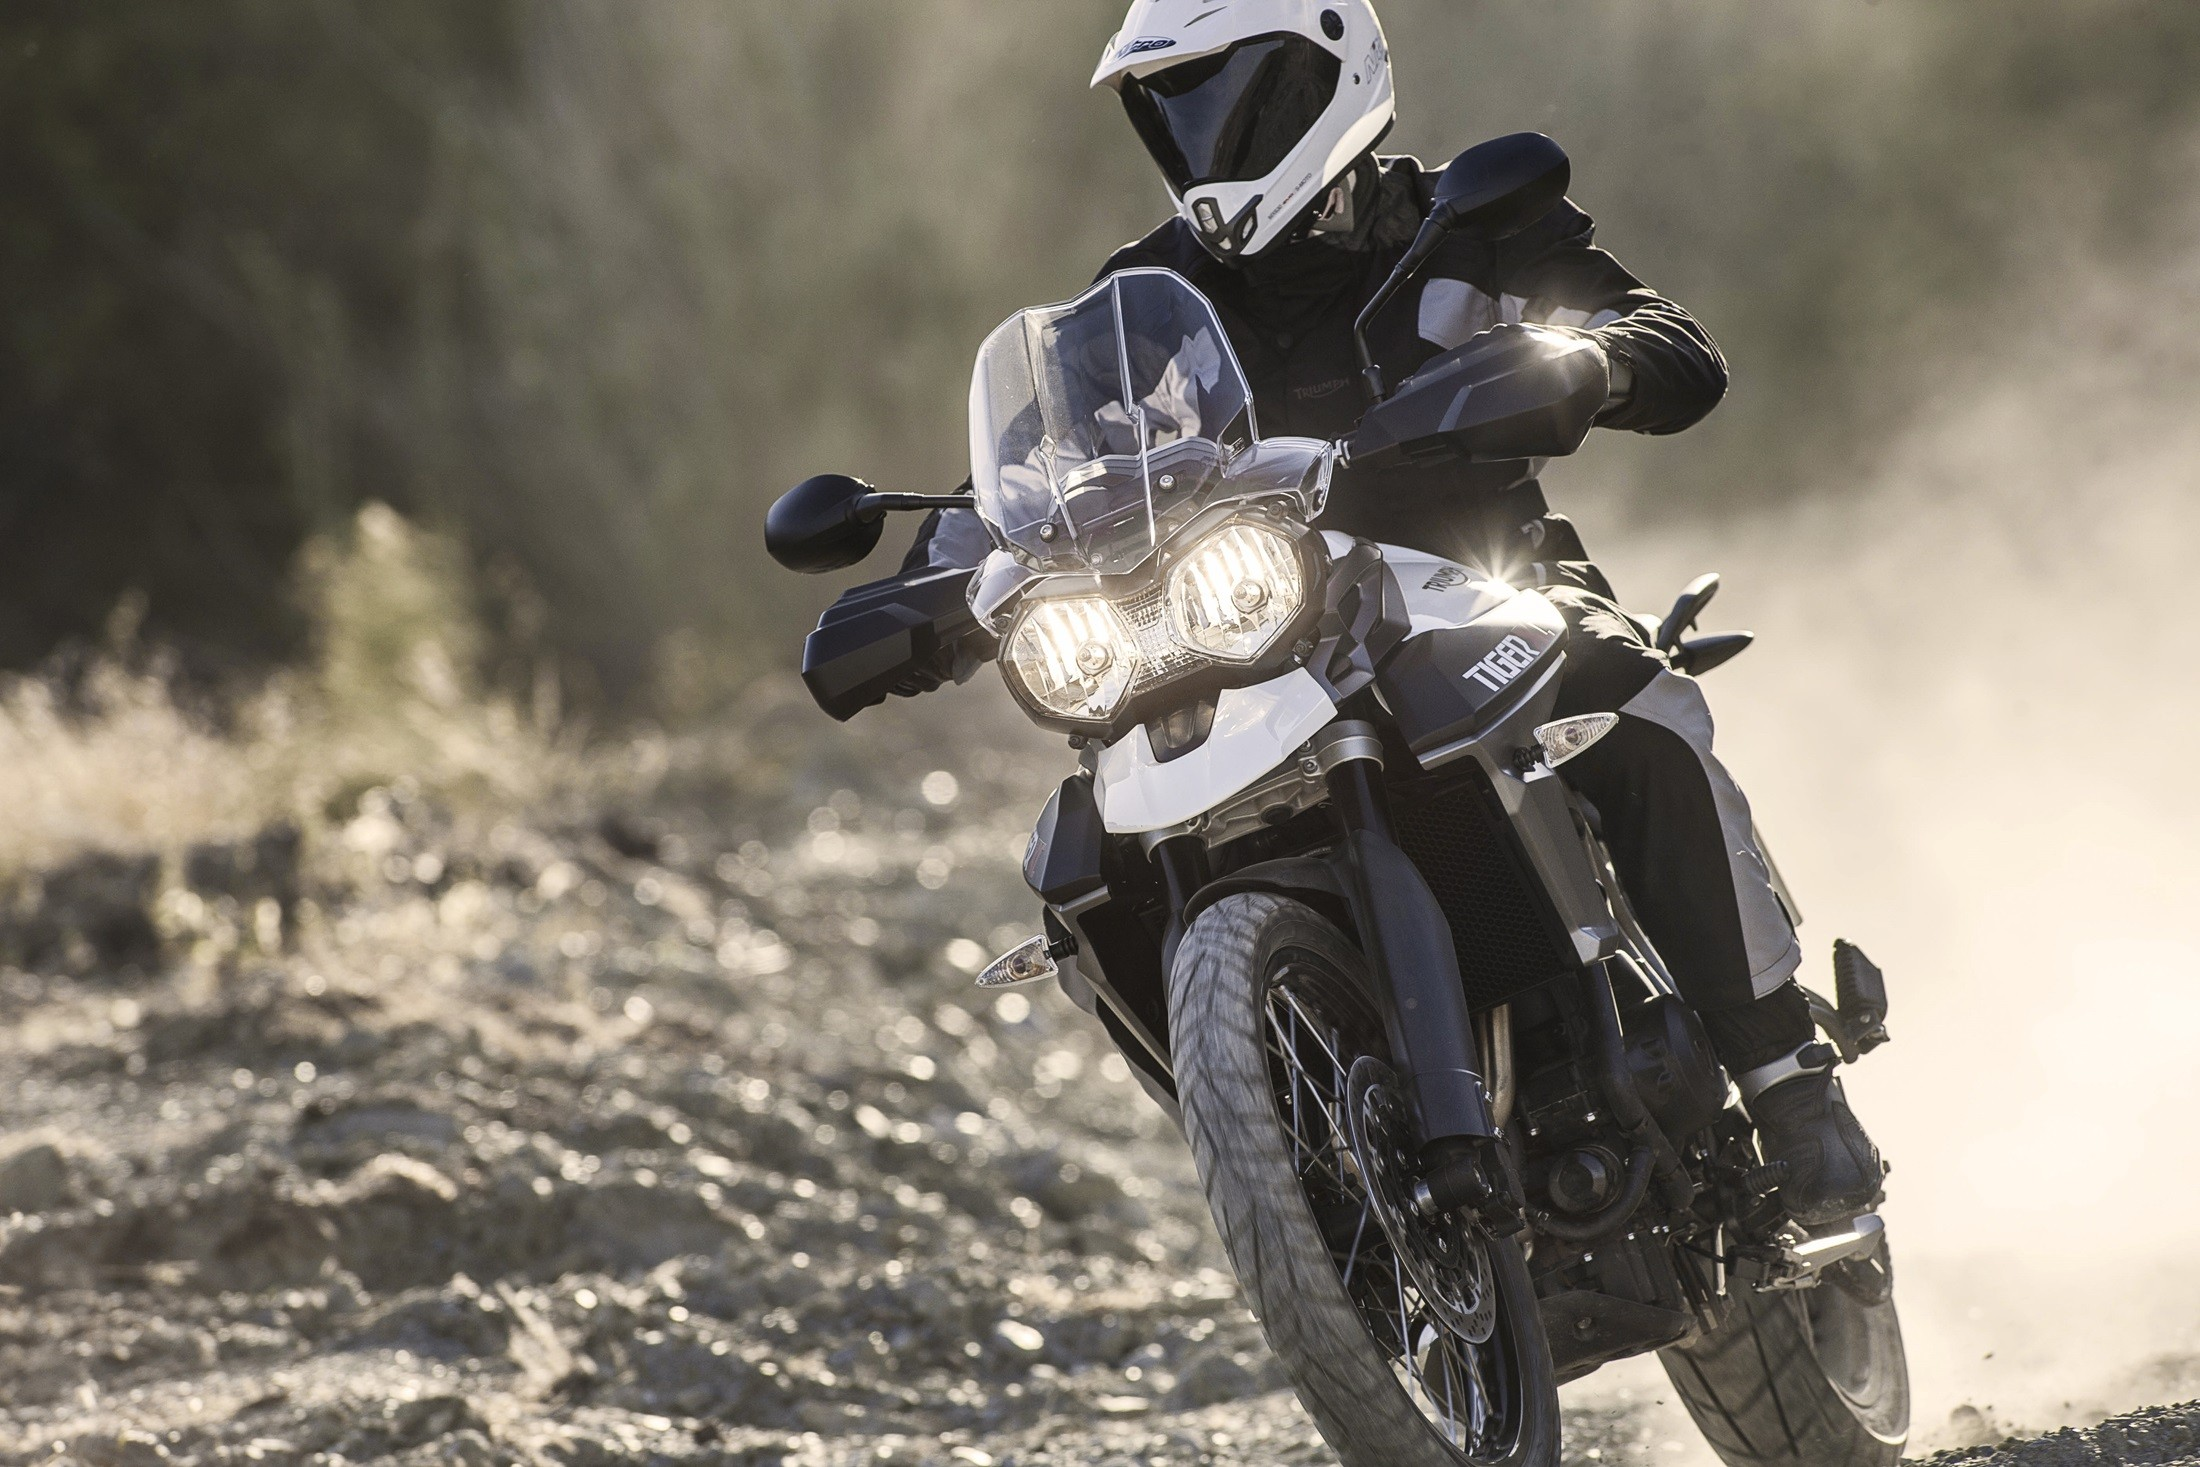 2011 Triumph Tiger 800 And 800XC | Top Speed